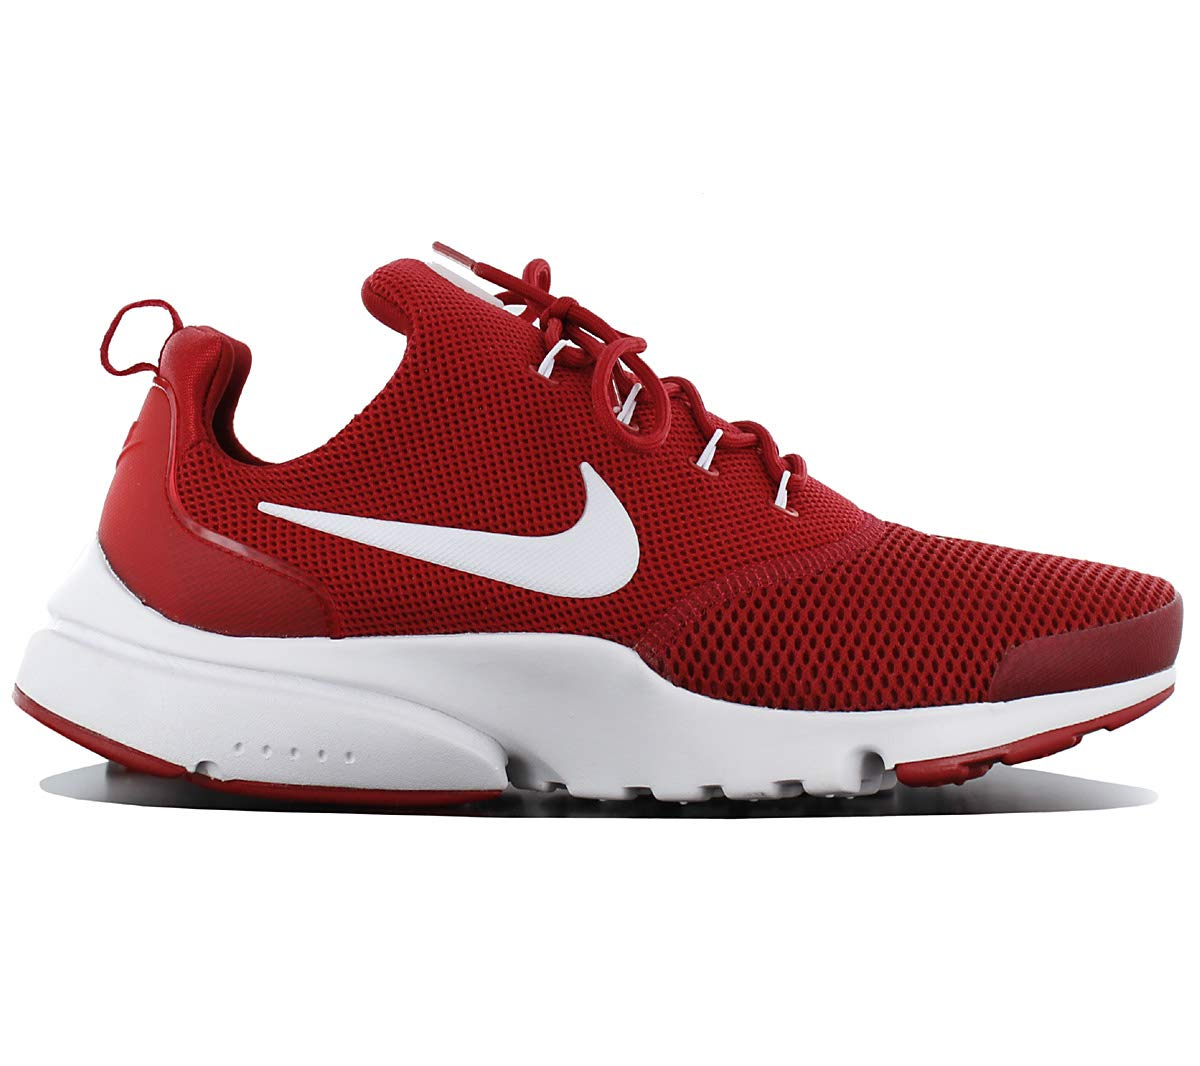 5a9d5acbf5f8 Galleon - NIKE PRESTO FLY GYM RED WHITE 908019 600 MENS RUNNING